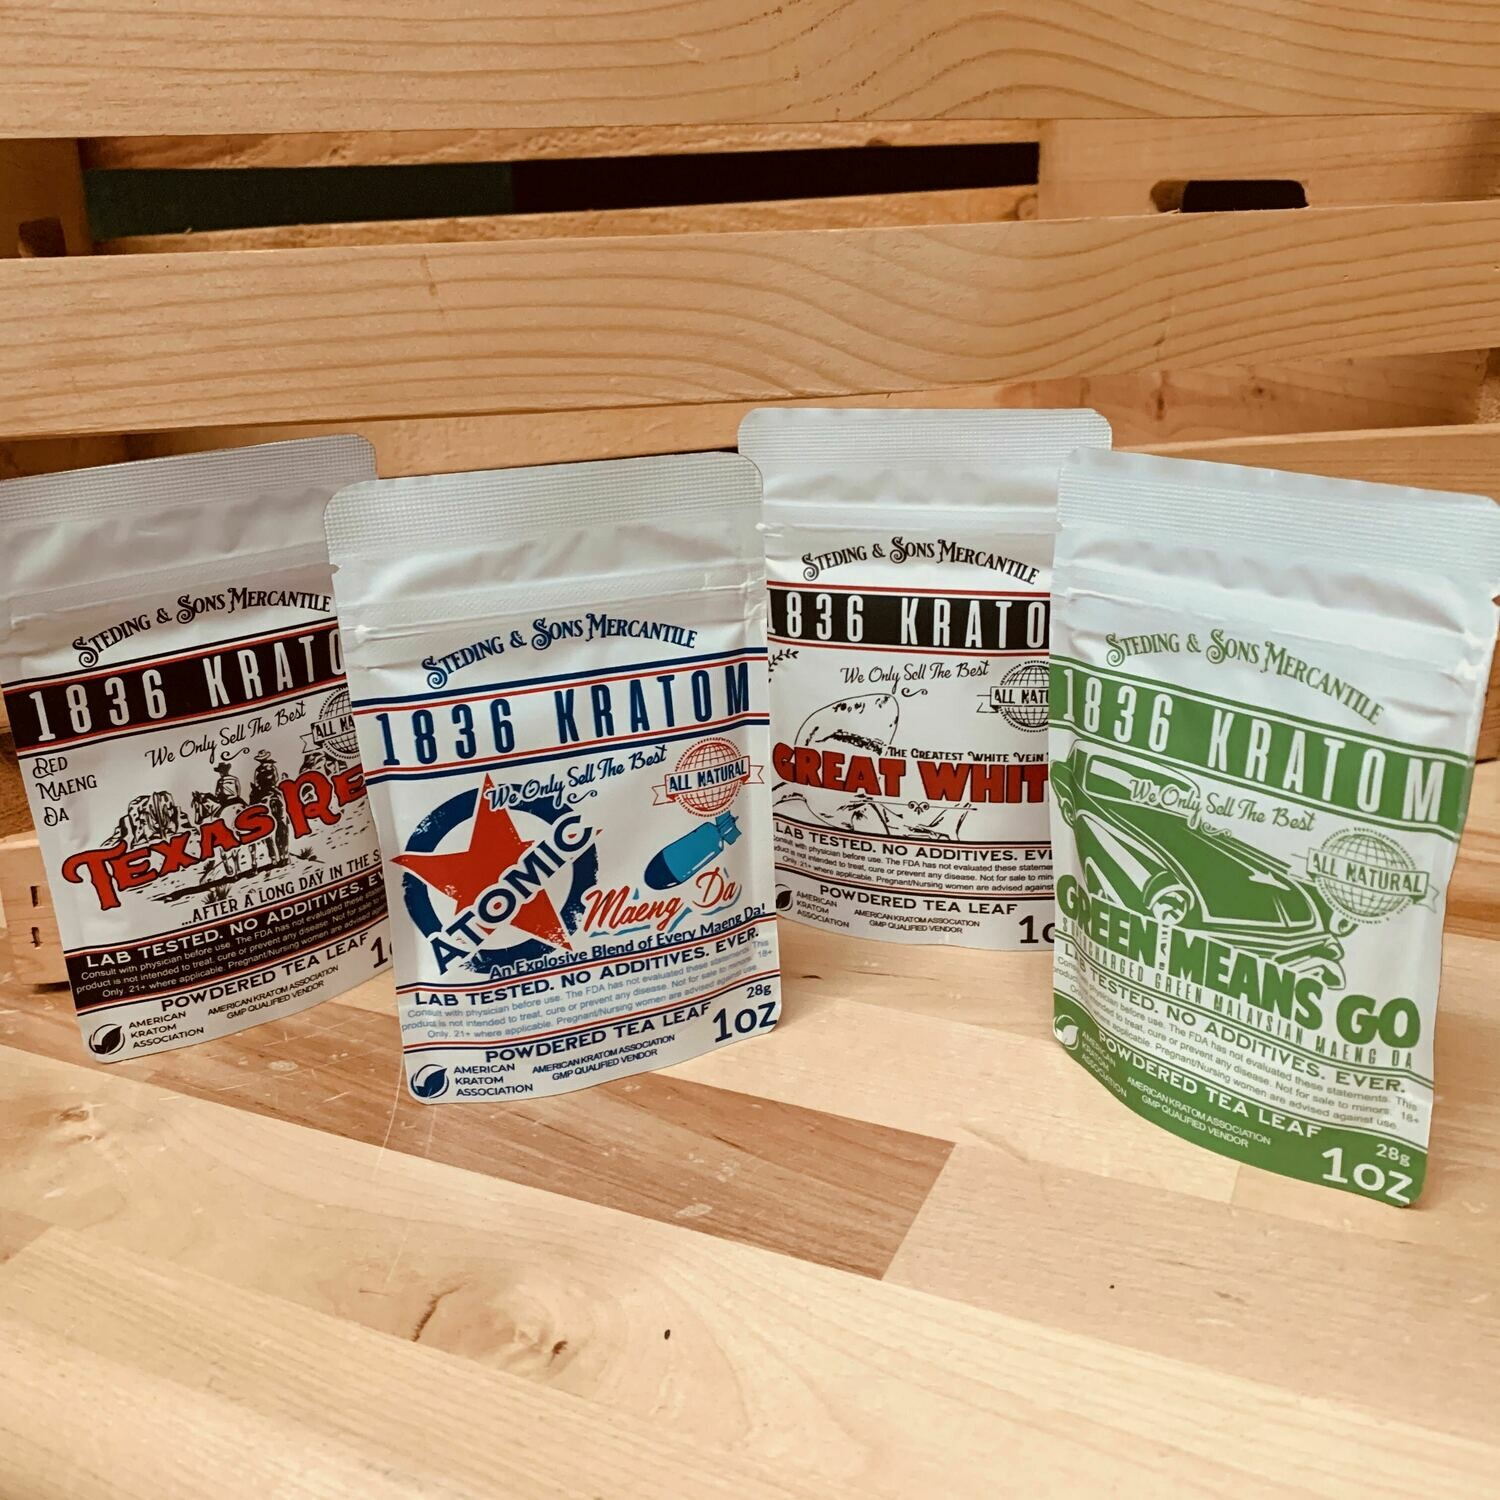 1836 Powder - Primary Strains Sample Pack. Our Best Sellers!